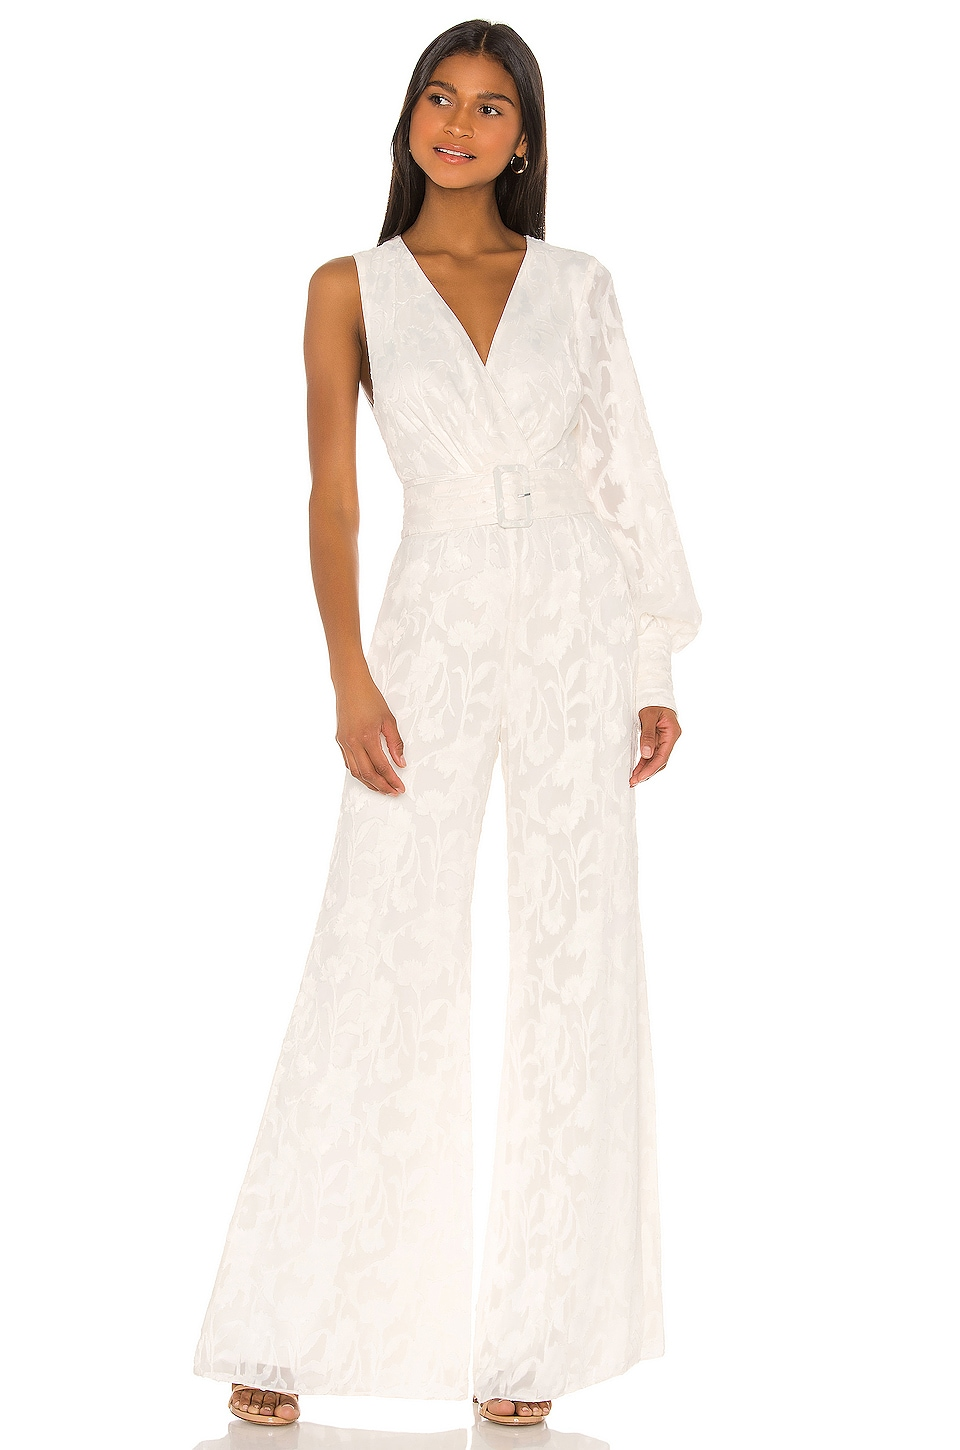 Alexis Berezzi Jumpsuit in Ivory Floral